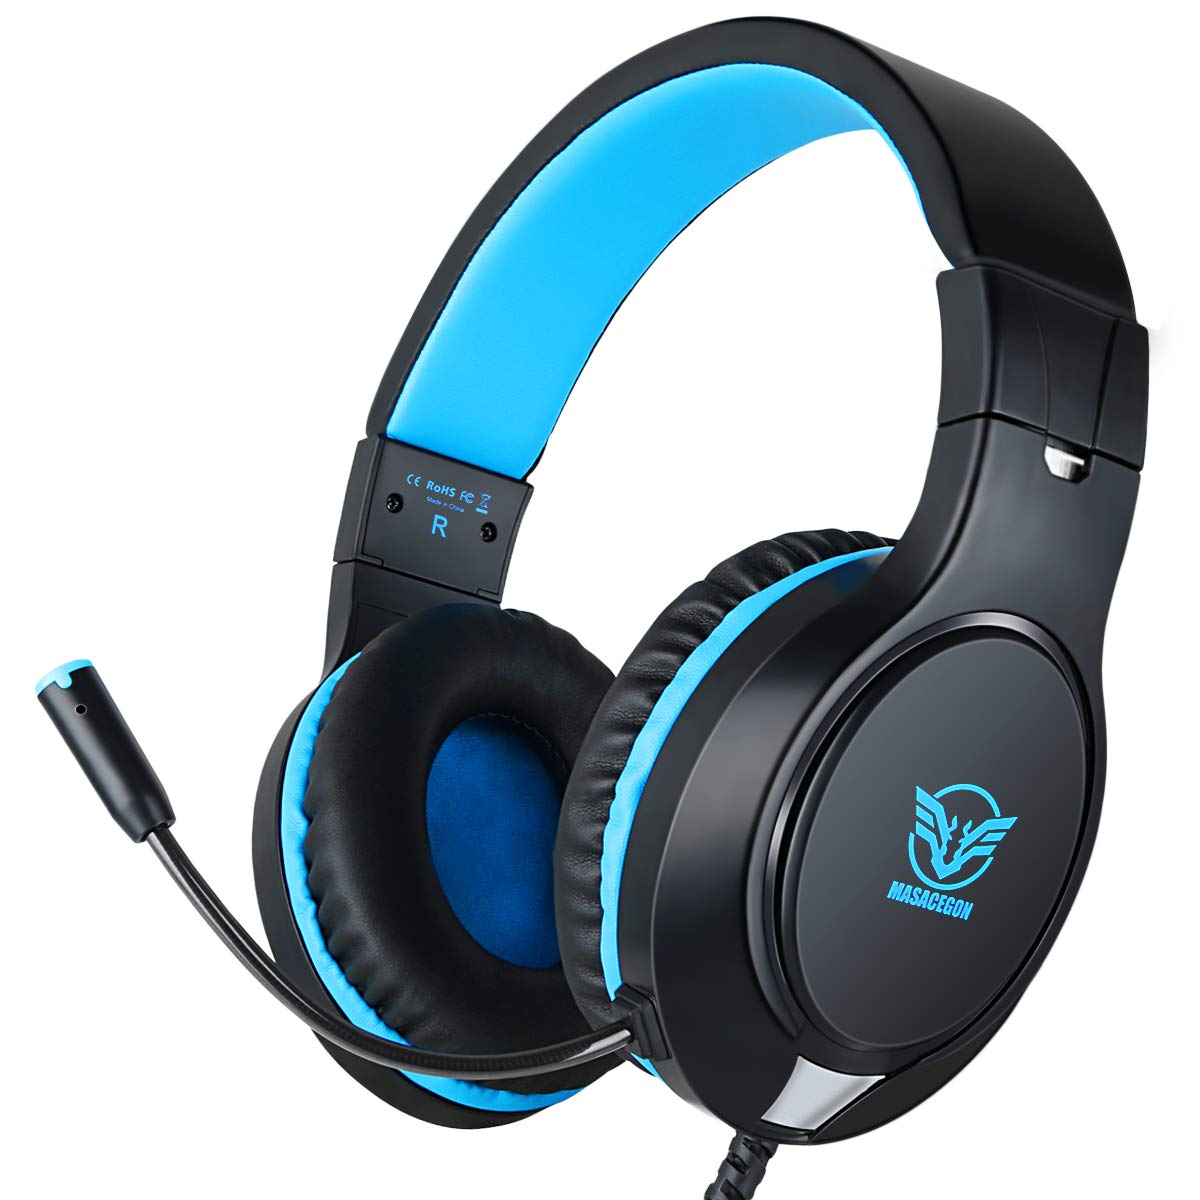 Gaming Headset, Professional3 5MMBass Sound Game Headset for Xbox One/S,  PS4, PC, iPad, Computer Headphone with Noise Canceling Microphone,  Adjustable